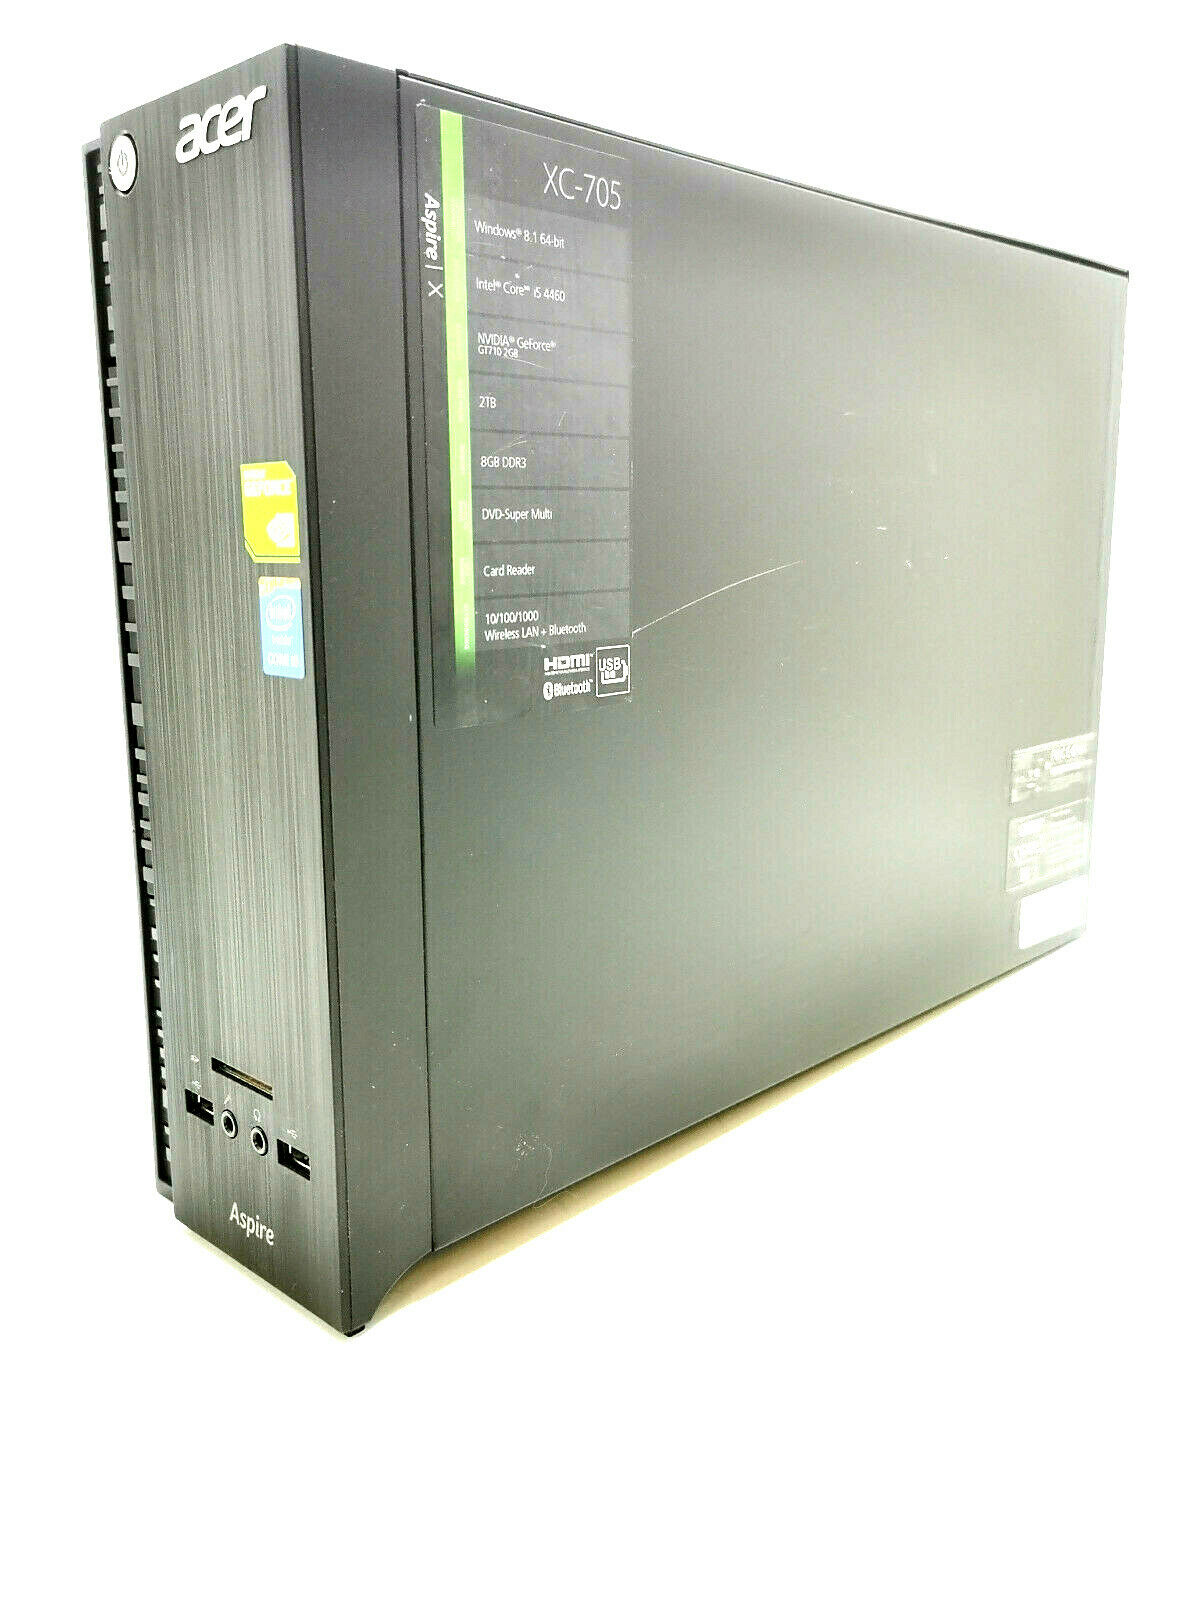 Acer Aspire XC-705 SFF No 3